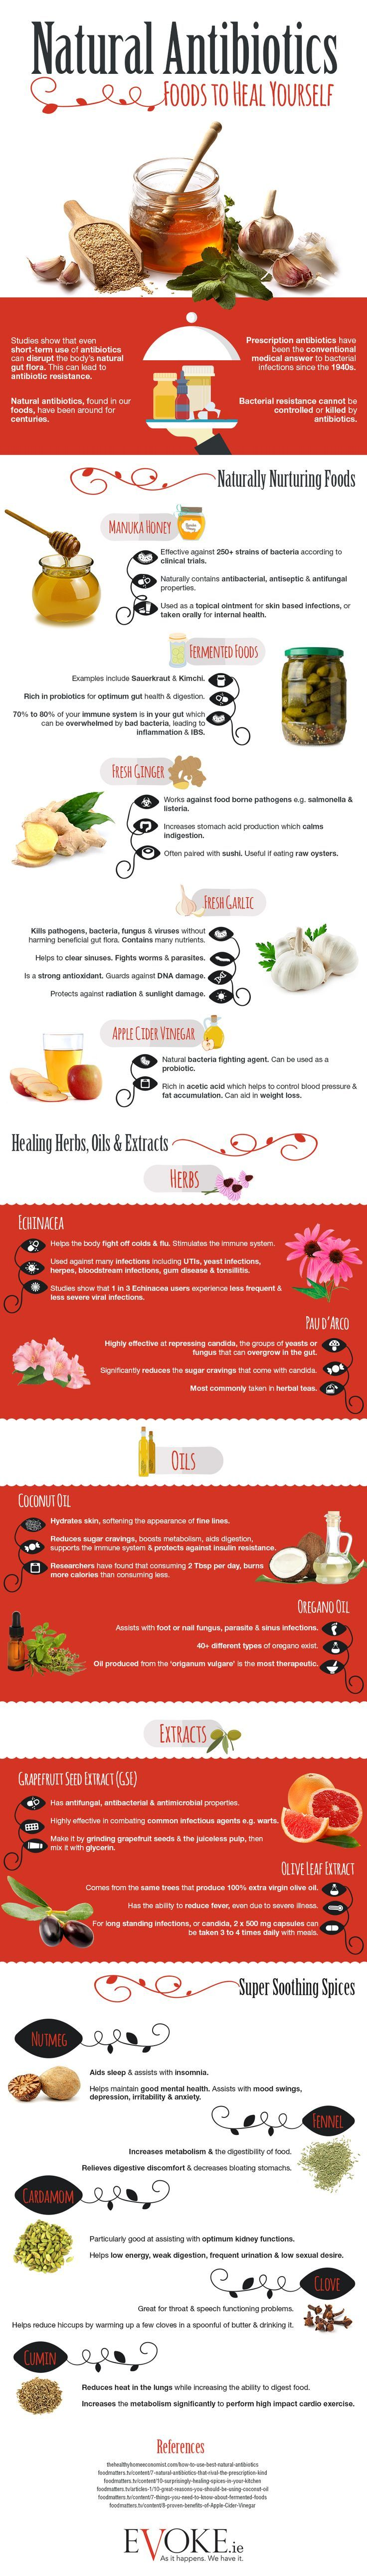 Natural Antibiotics: Foods to Heal Yourself – Infographic